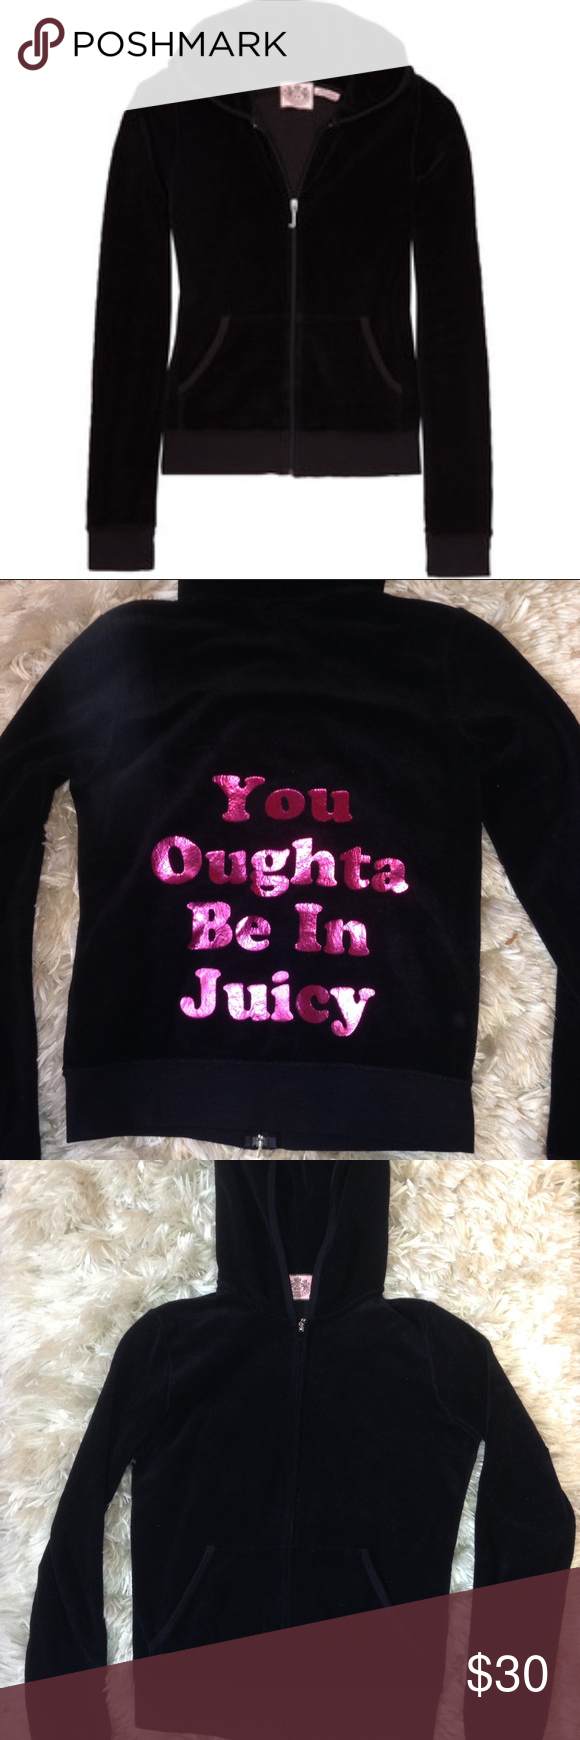 Juicy Couture Black Sweater | More Juicy couture, Solid black and ...